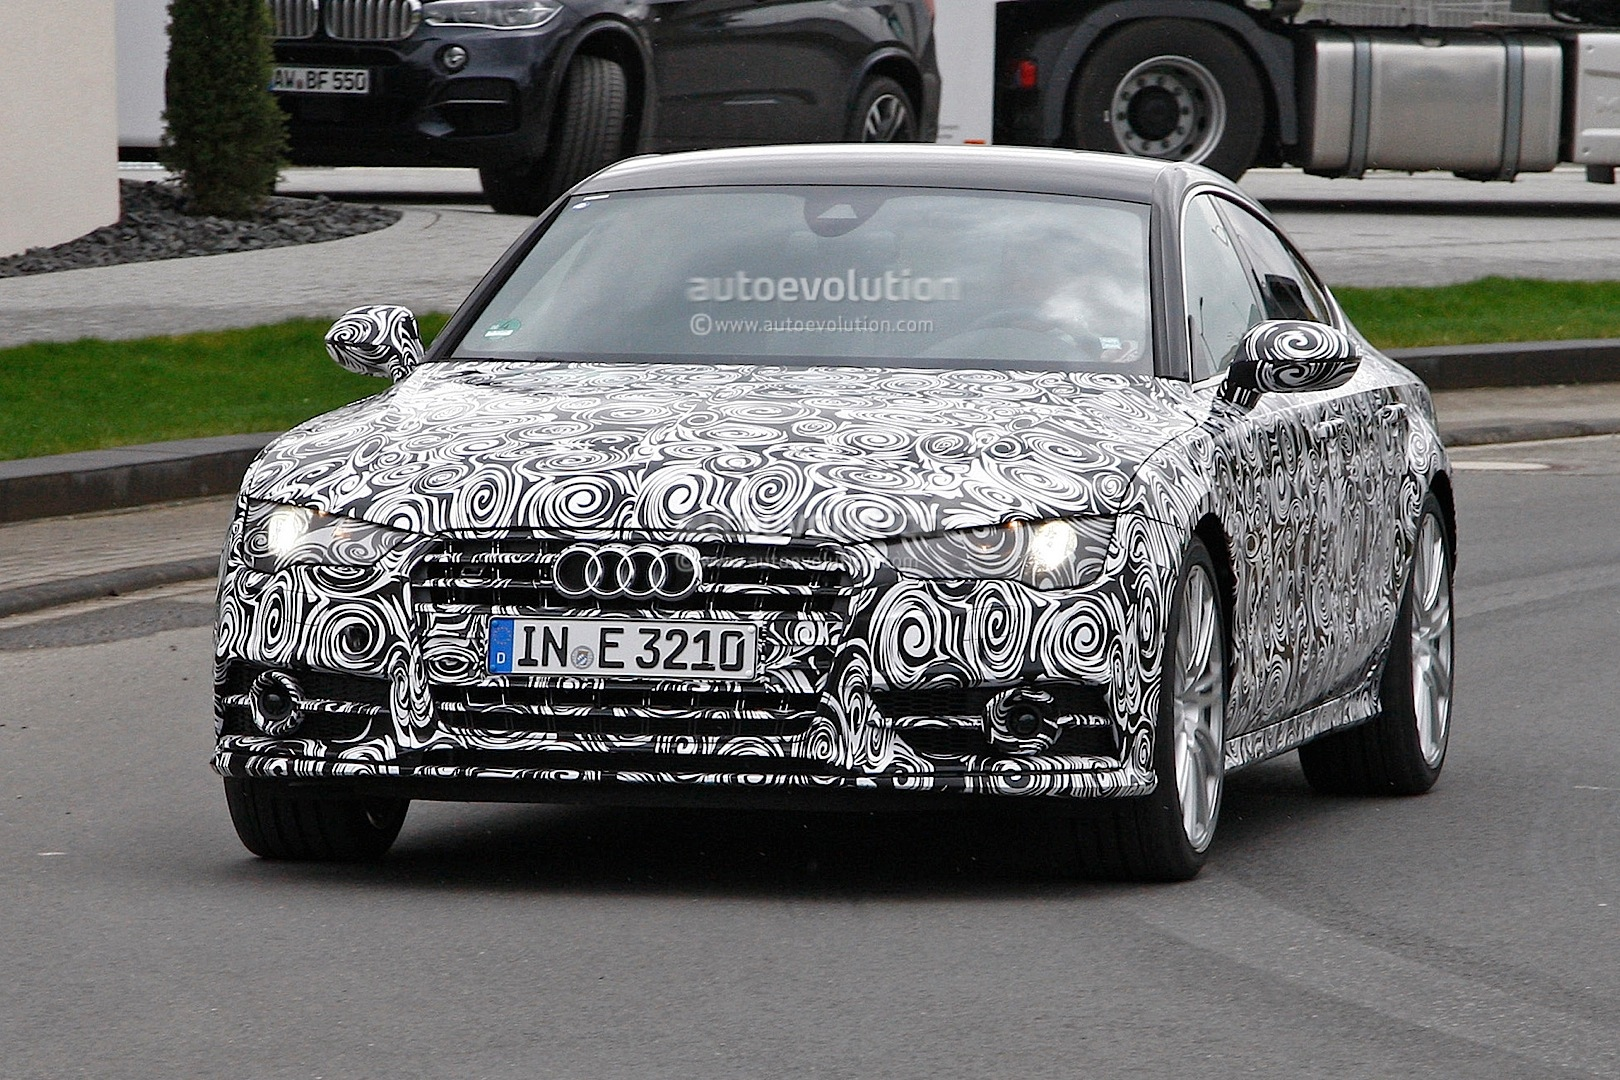 2014 - [Audi] A7 & S7 Sportback Restylée - Page 3 Spyshots-2015-audi-s7-facelift-has-a-new-grille-and-headlights_1